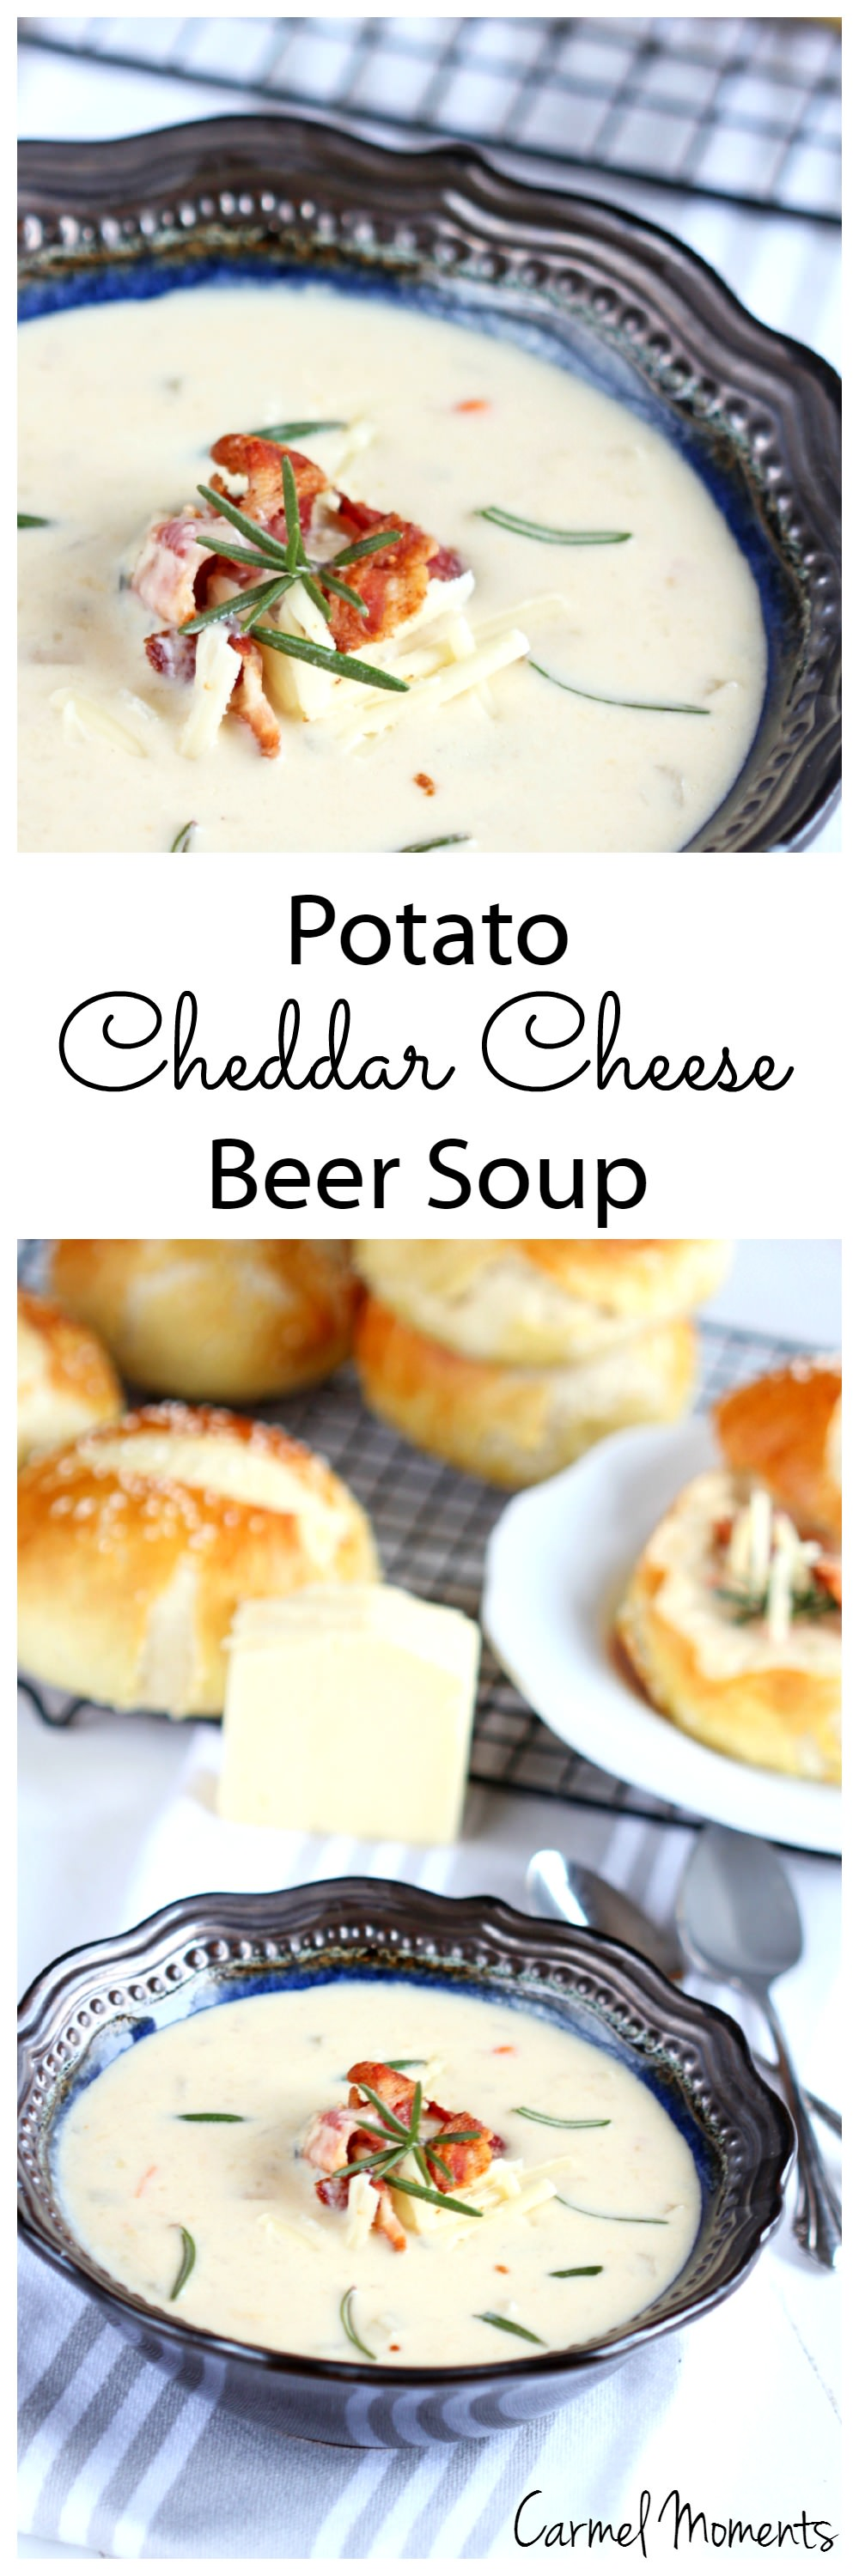 Potato Cheddar Cheese Beer Soup | Carmel Moments